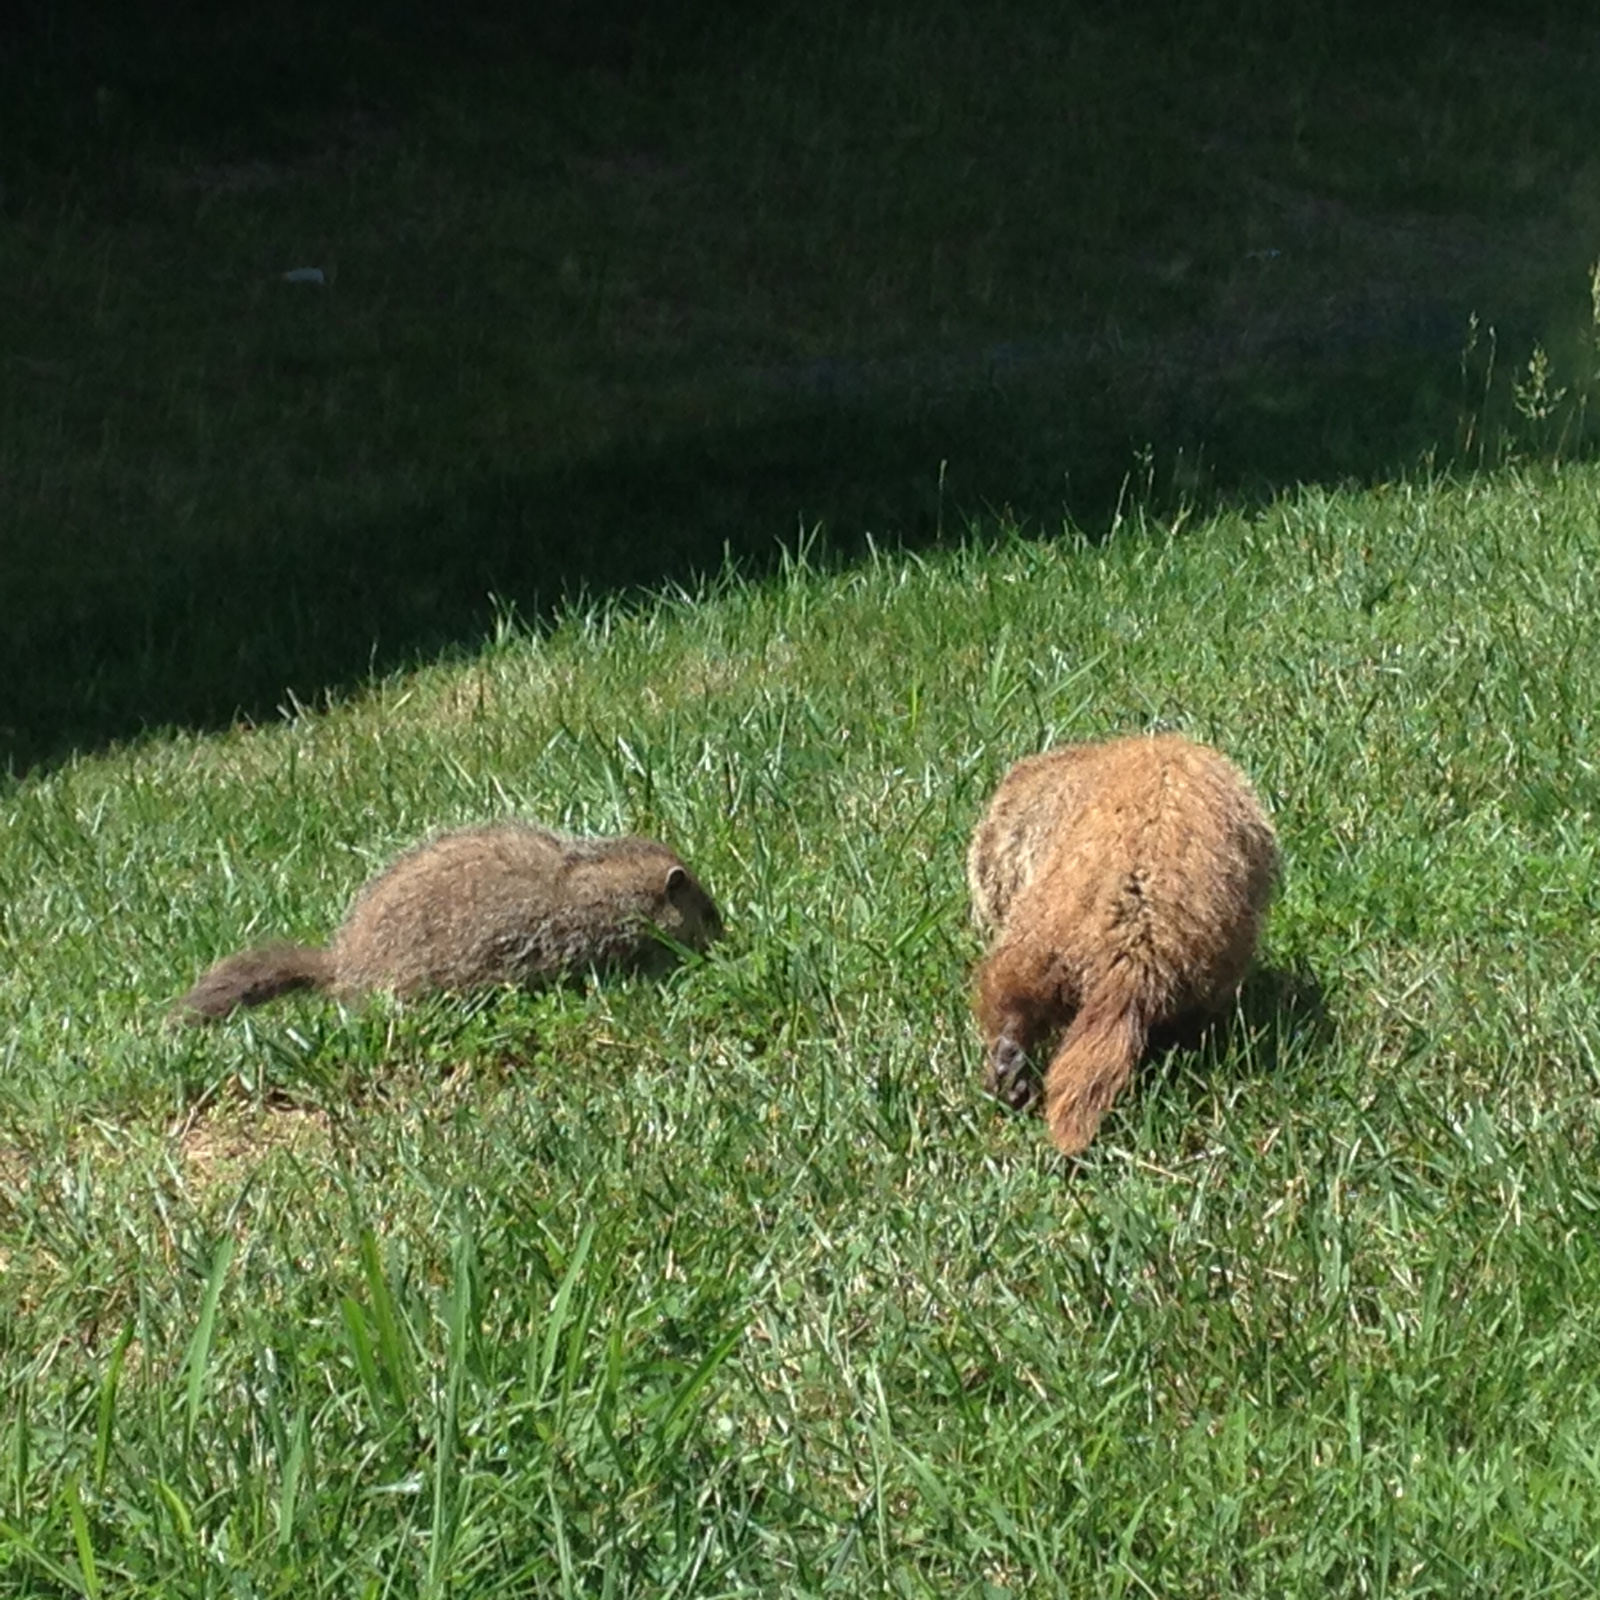 A mother and baby groundhog-the mothers seem to have a redder color.